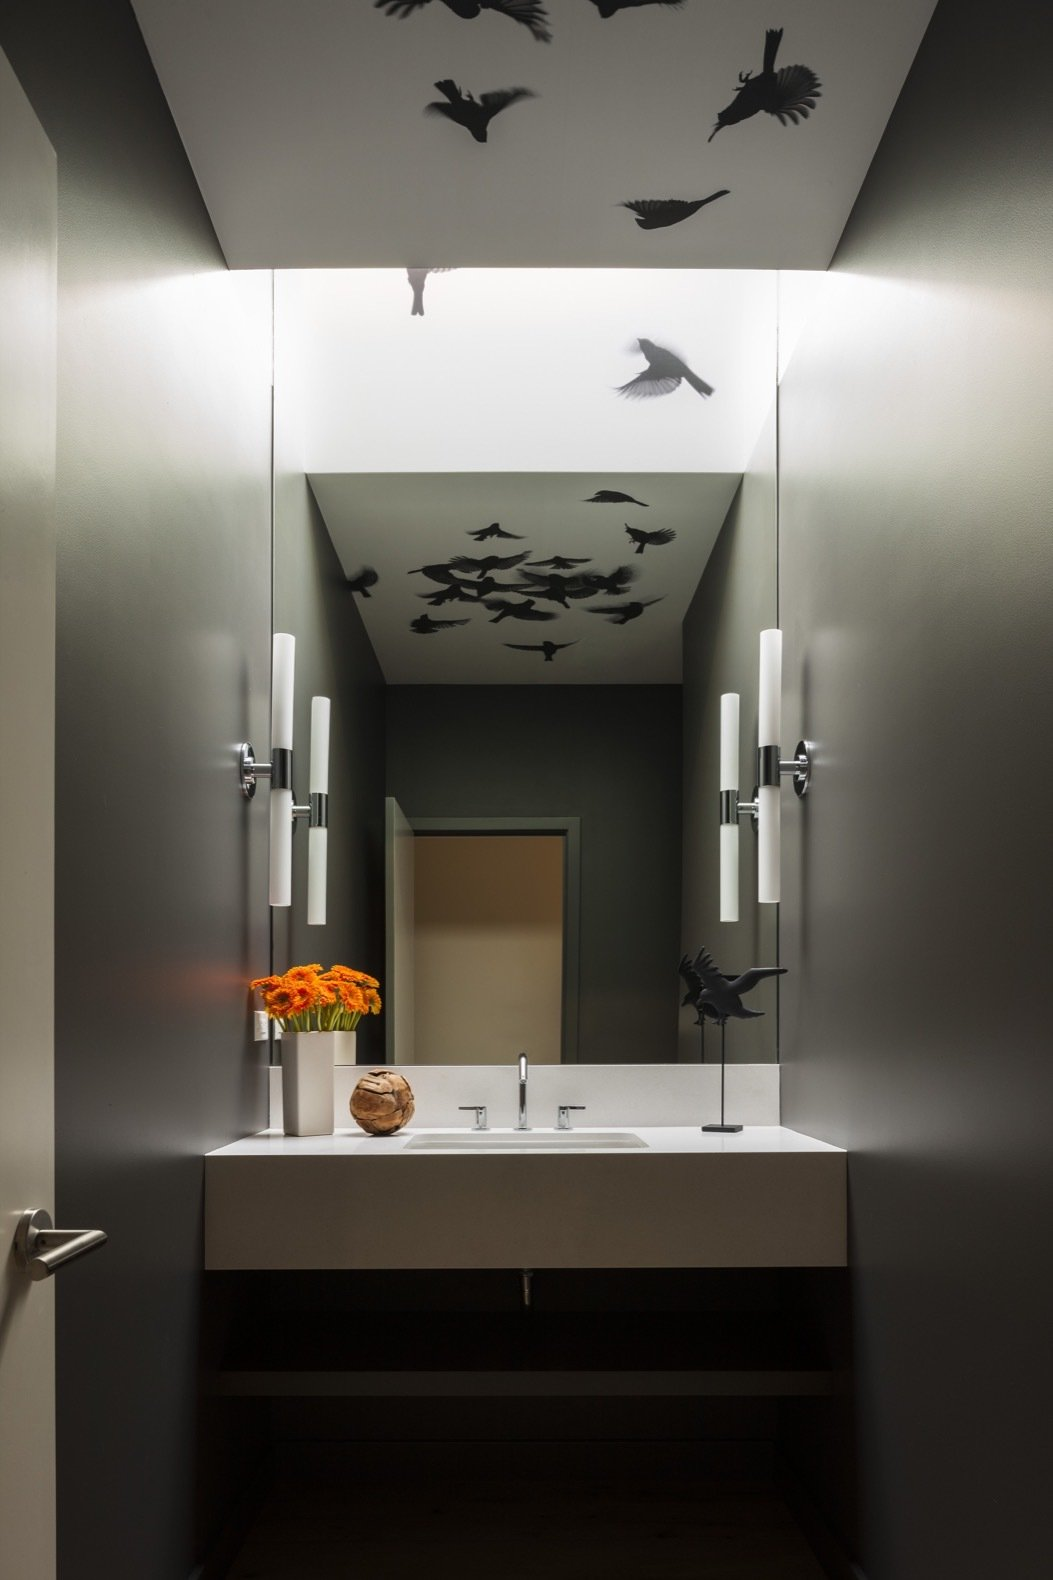 """Bath, Engineered Quartz, Medium Hardwood, Undermount, Accent, and Wall """"The owners have a love of blackbirds and had coveted this Indi wallpaper from Trove for years,"""" add the architects. """"The design team came up with the idea of applying it to the ceiling and wrapping it into the continuous skylight so the illusion of birds flying through could come to life. All who enter the room are surprised by the birds reflected in the mirror.""""    Best Bath Undermount Accent Wall Photos from A High Desert Home Slides Open Like a Swiss Army Knife"""